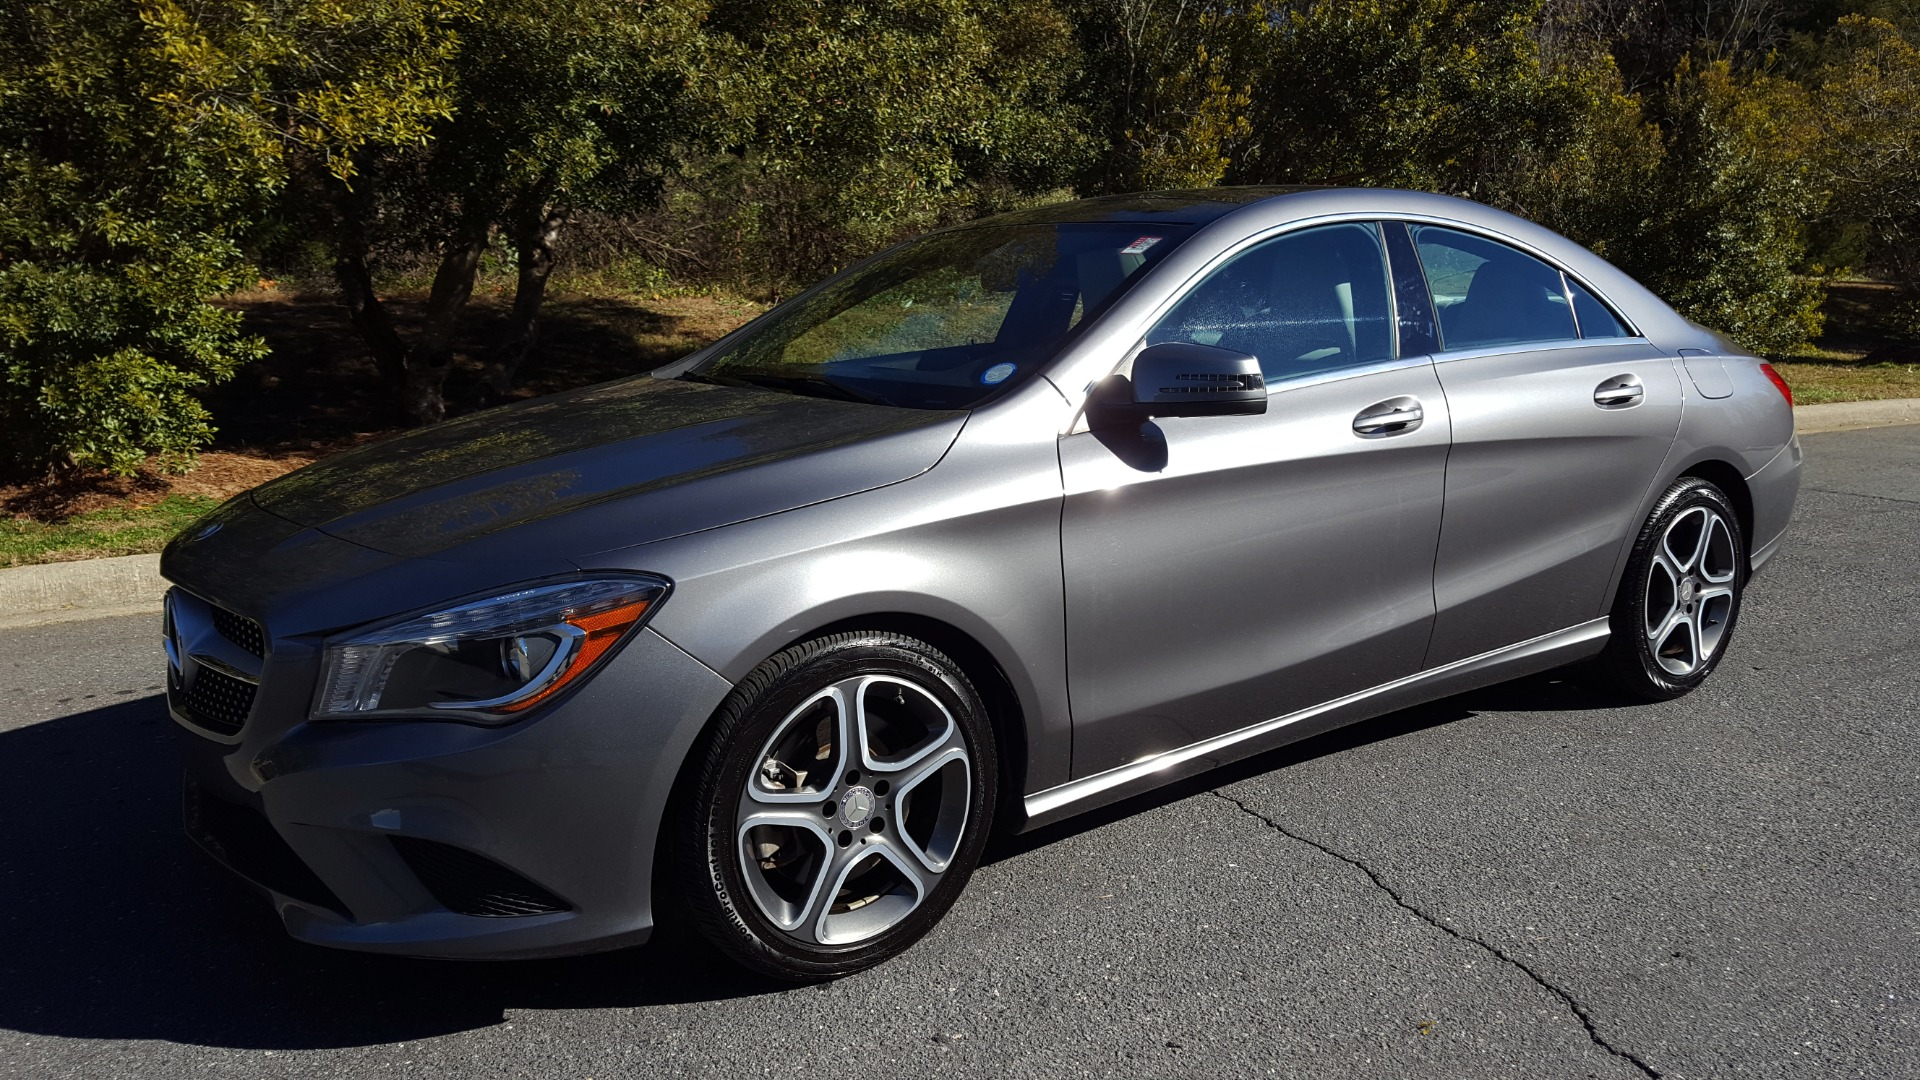 Used 2014 Mercedes-Benz CLA-CLASS CLA 250 / NAV / PANO-ROOF / BLIND SPOT ASSIST / XENON HEADLIGHTS for sale $19,995 at Formula Imports in Charlotte NC 28227 1